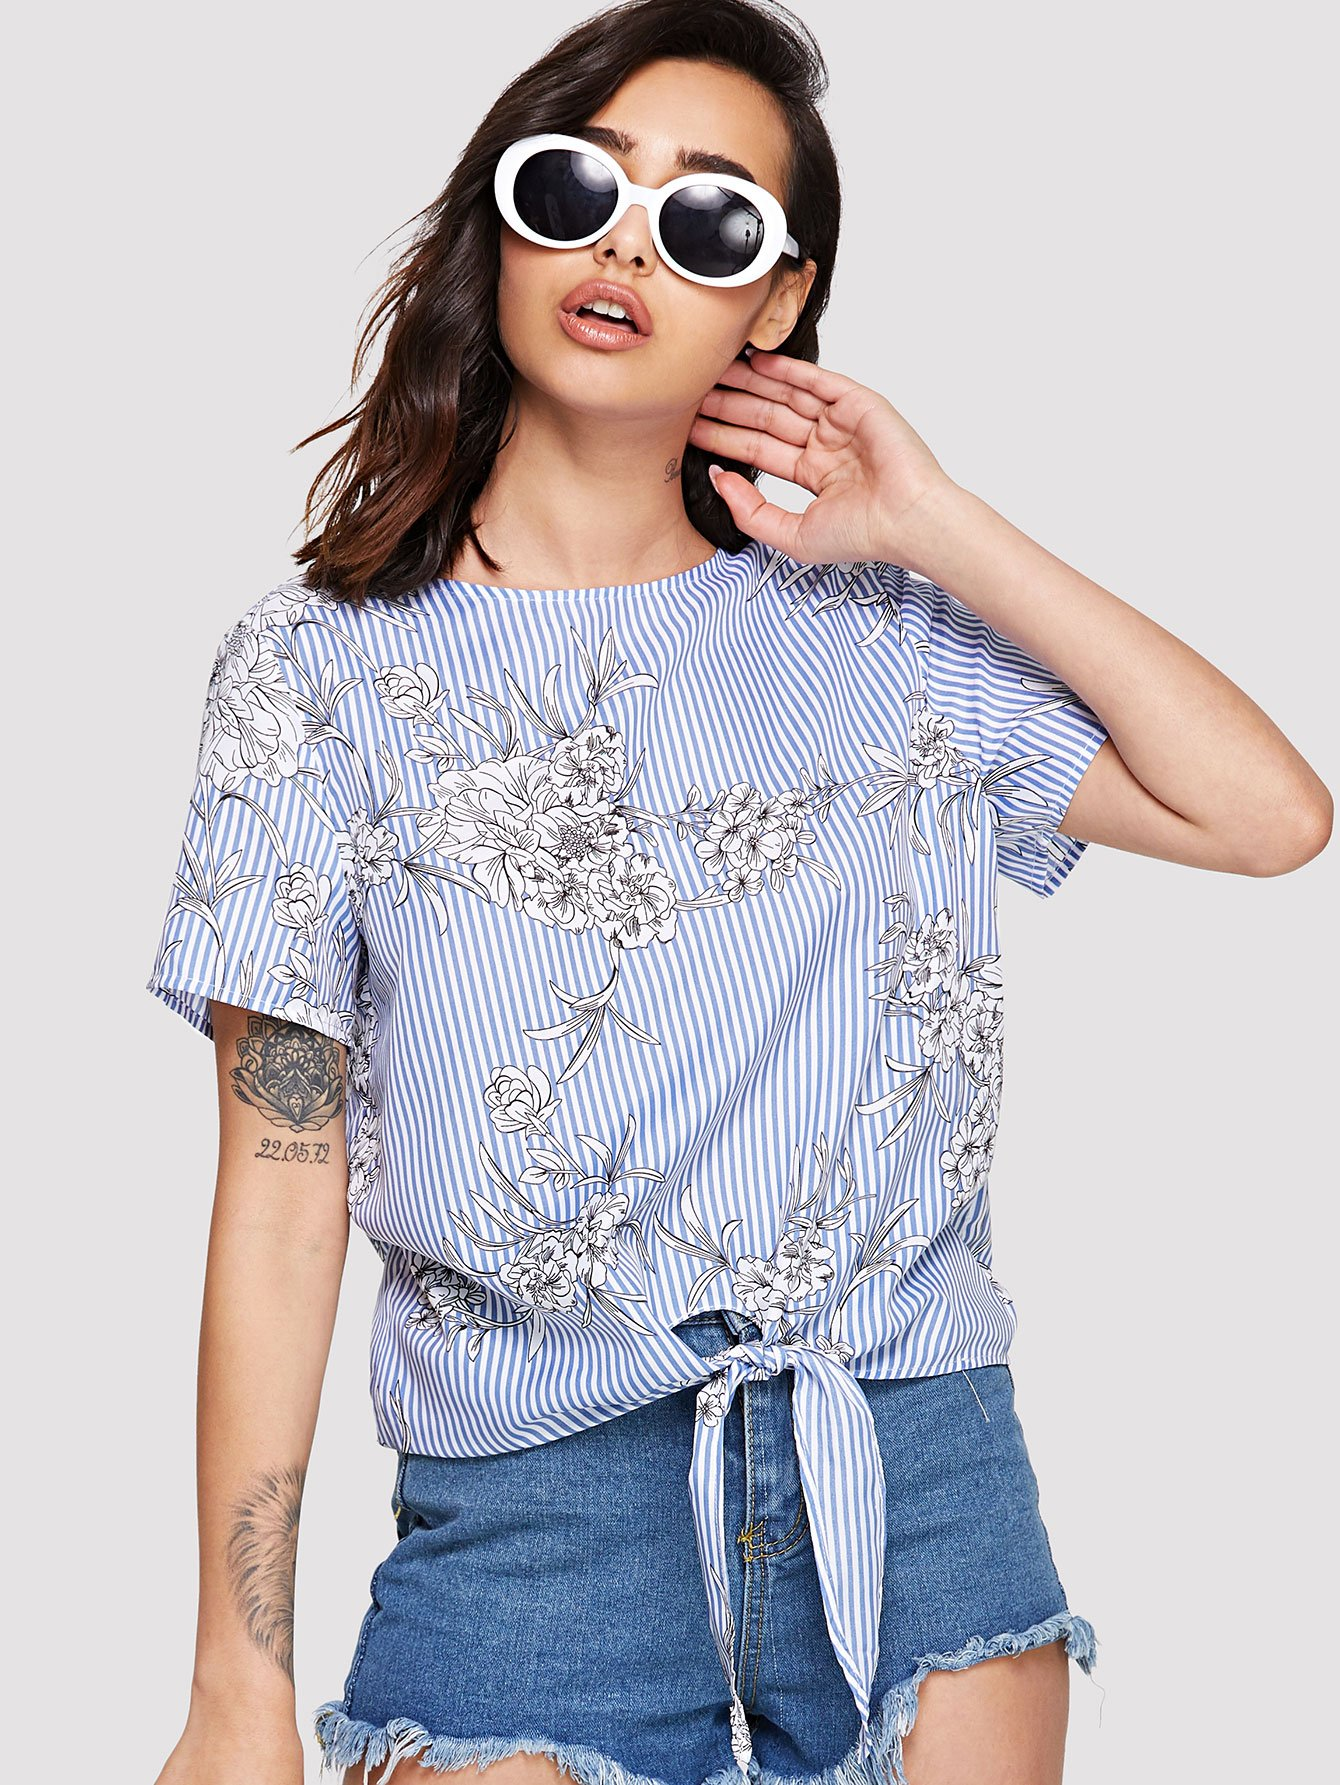 Knot Front Floral and Striped Top knot front floral print top